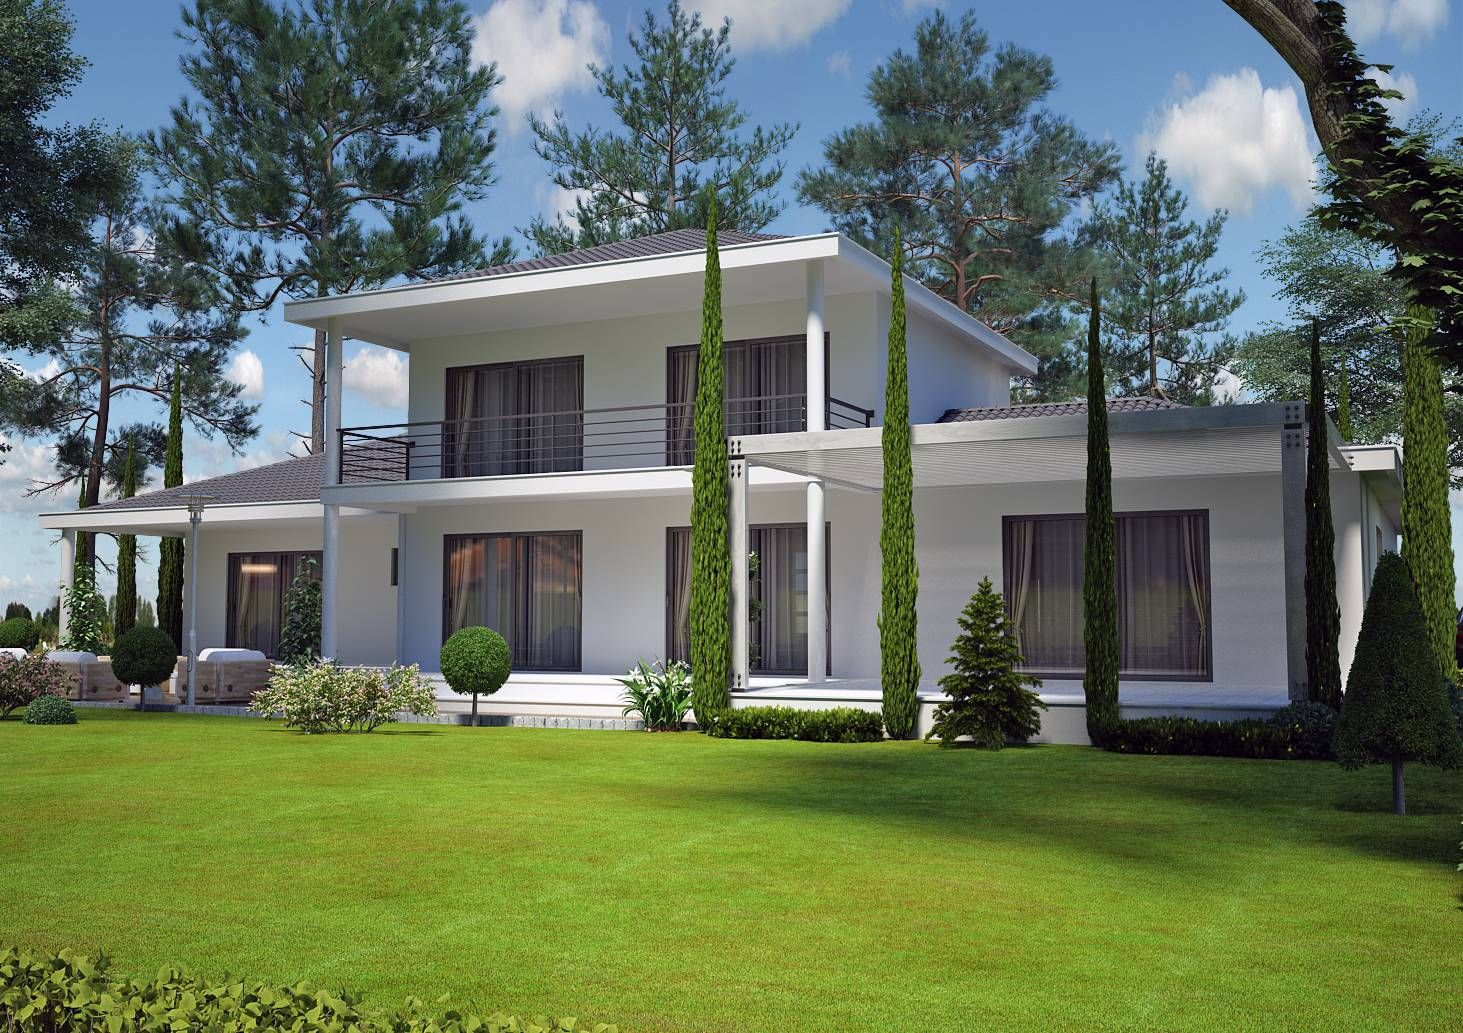 Villa contemporaine 150 m2 etage mod le pinede salon for Interieurs de maisons contemporaines